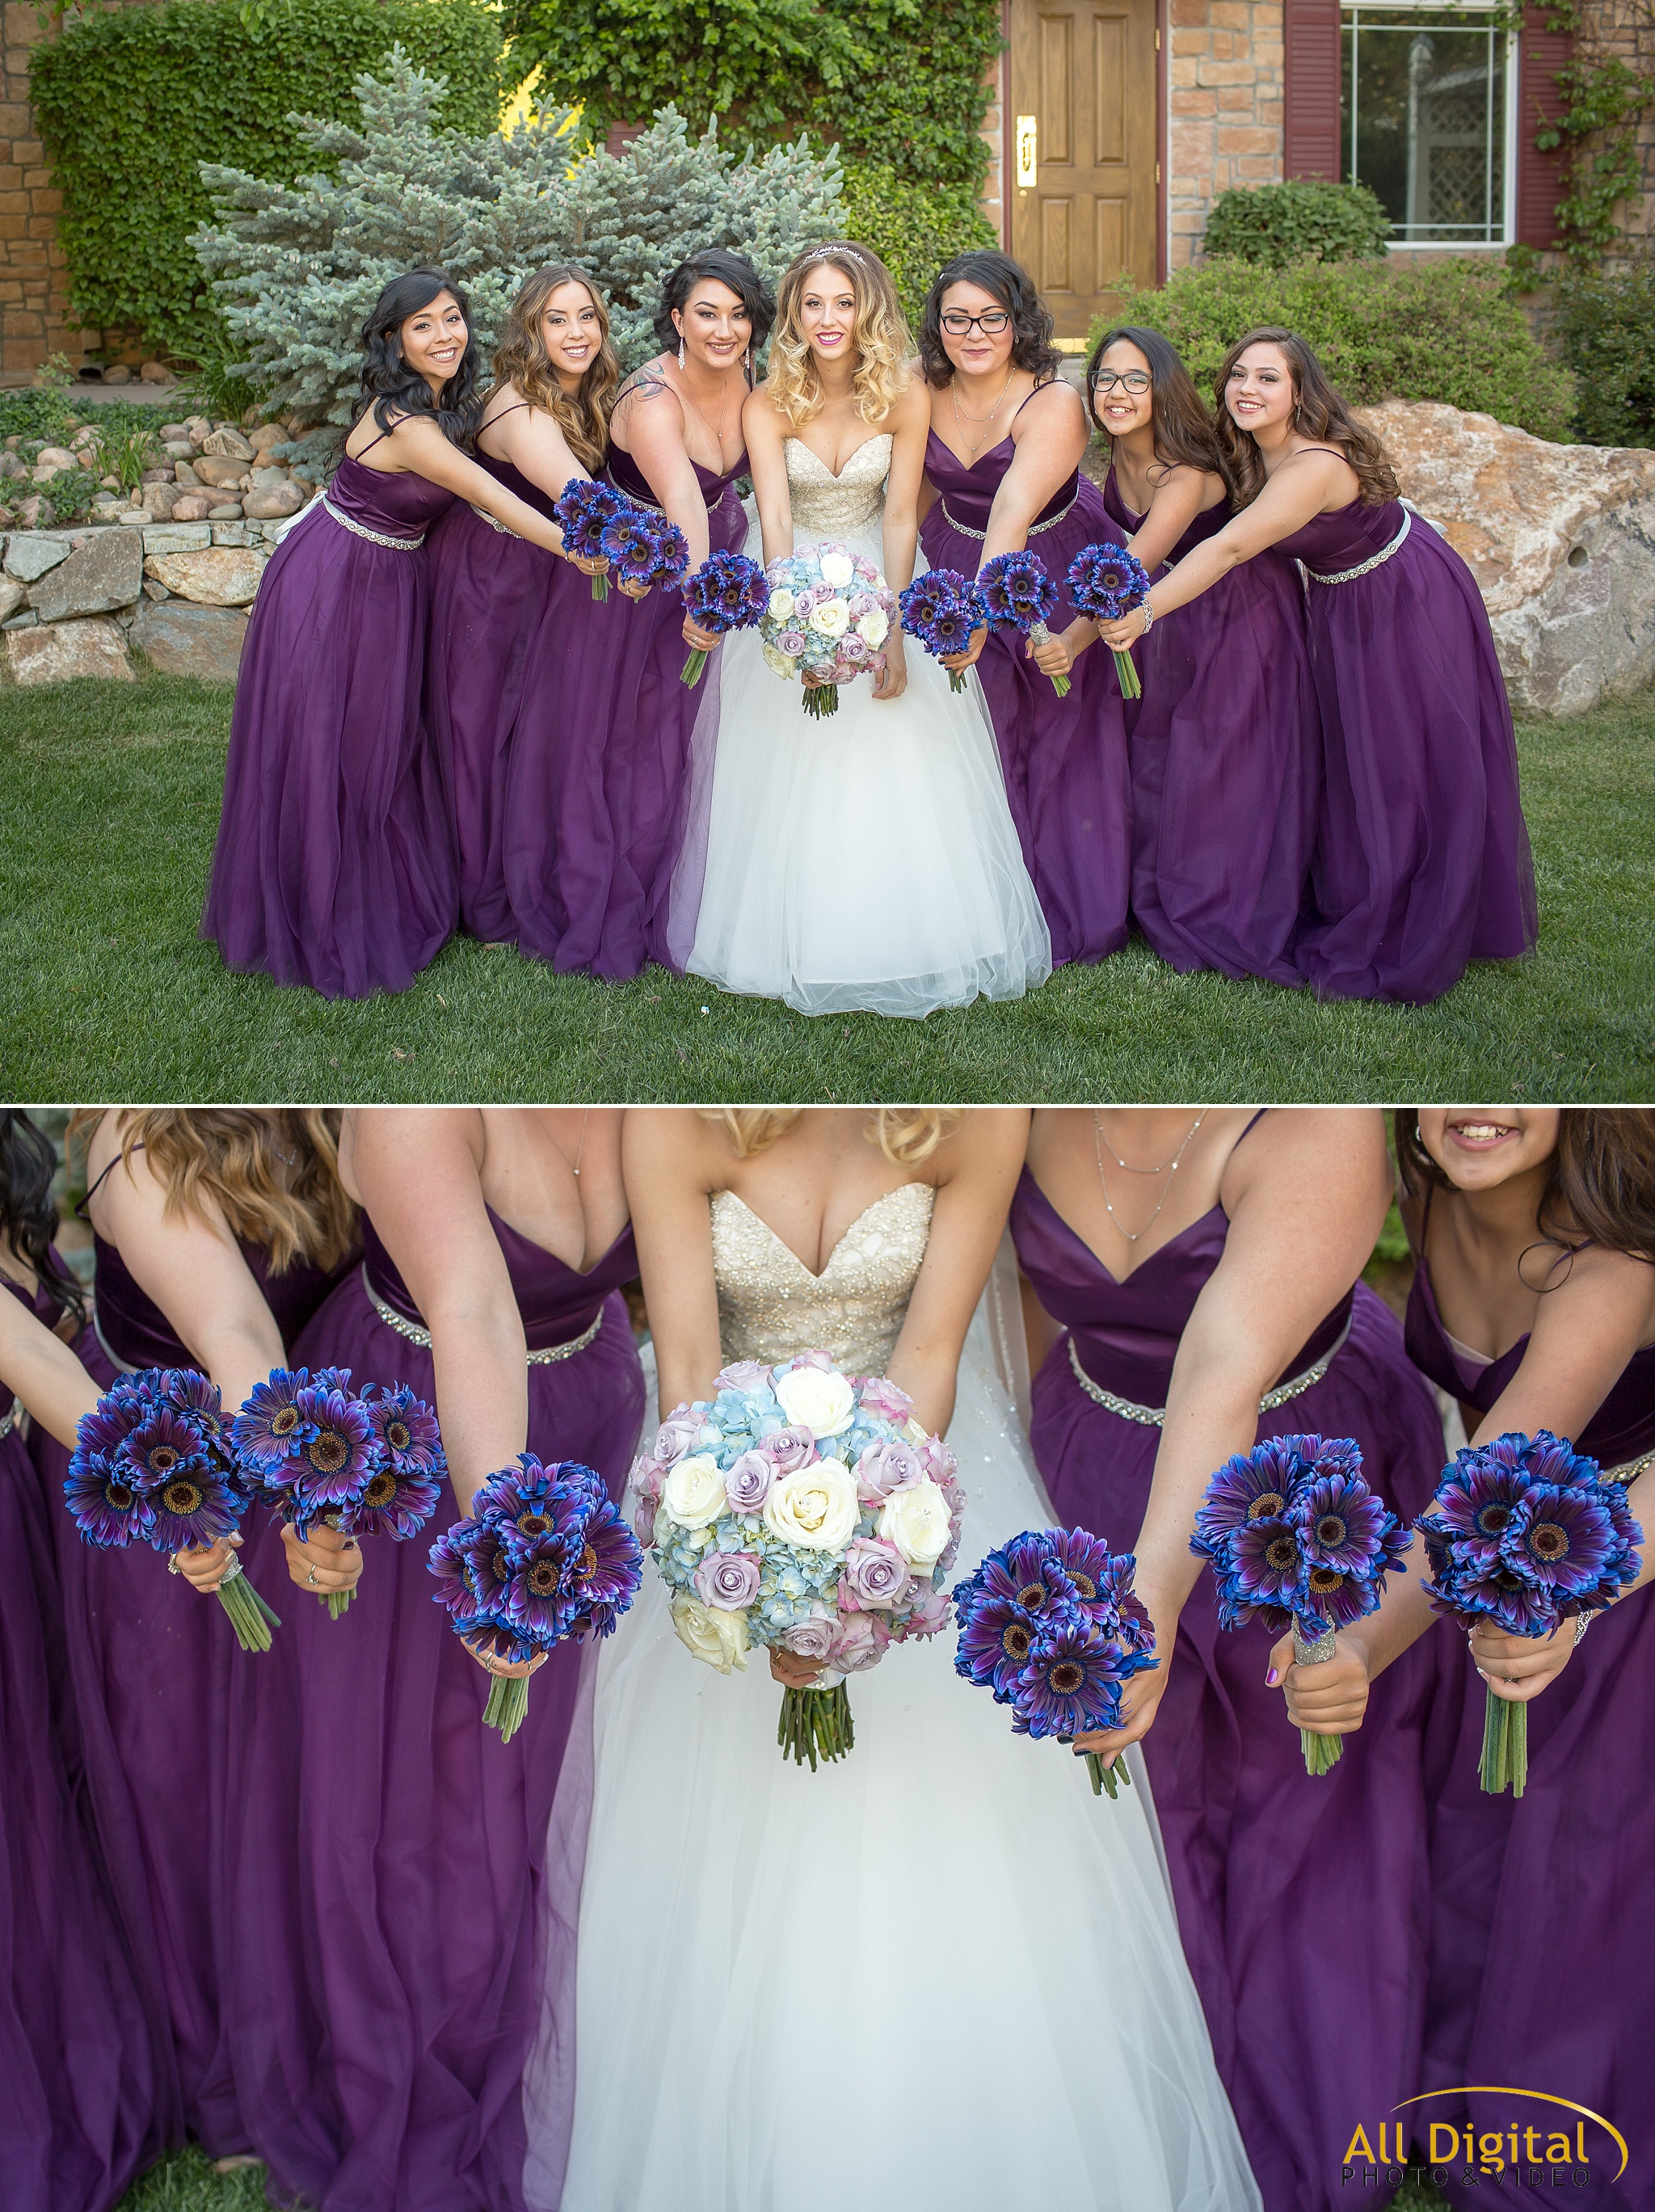 Fun bride and bridesmaid portraits at Stonebrook Manor.